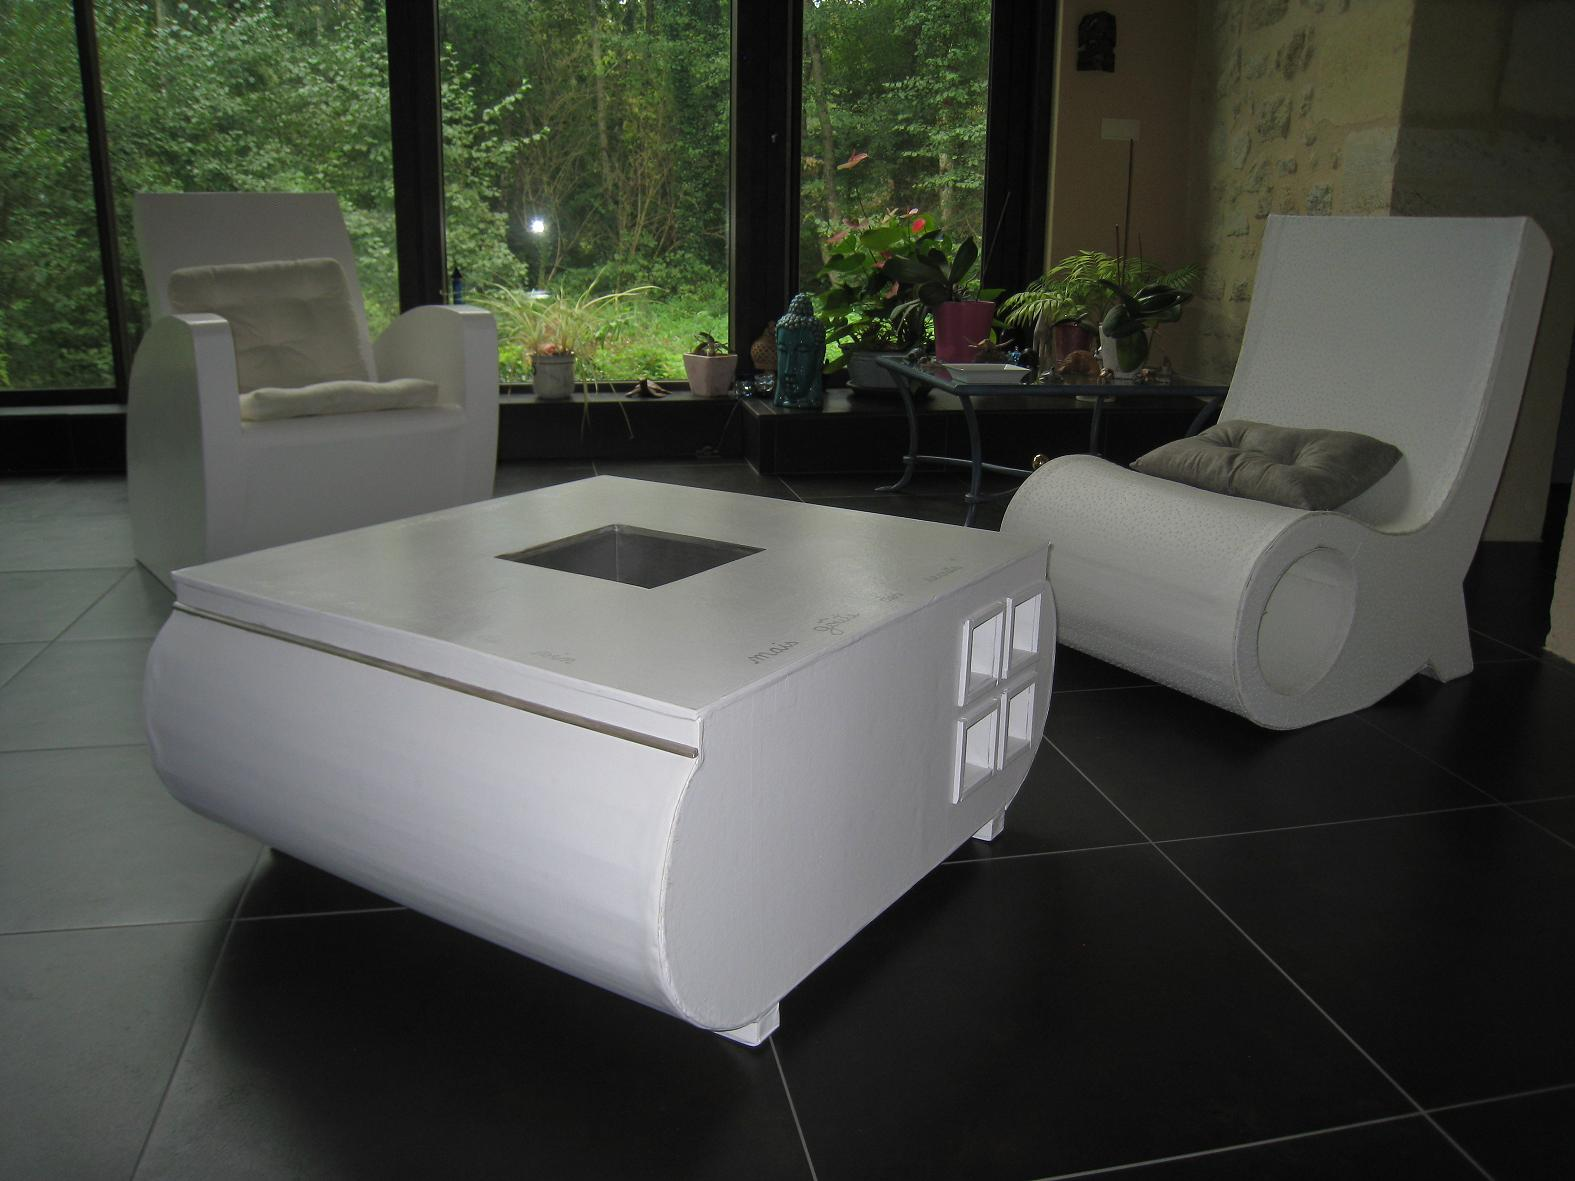 Comment cr er son mobilier en carton cartonrecup - Creer son meuble ...